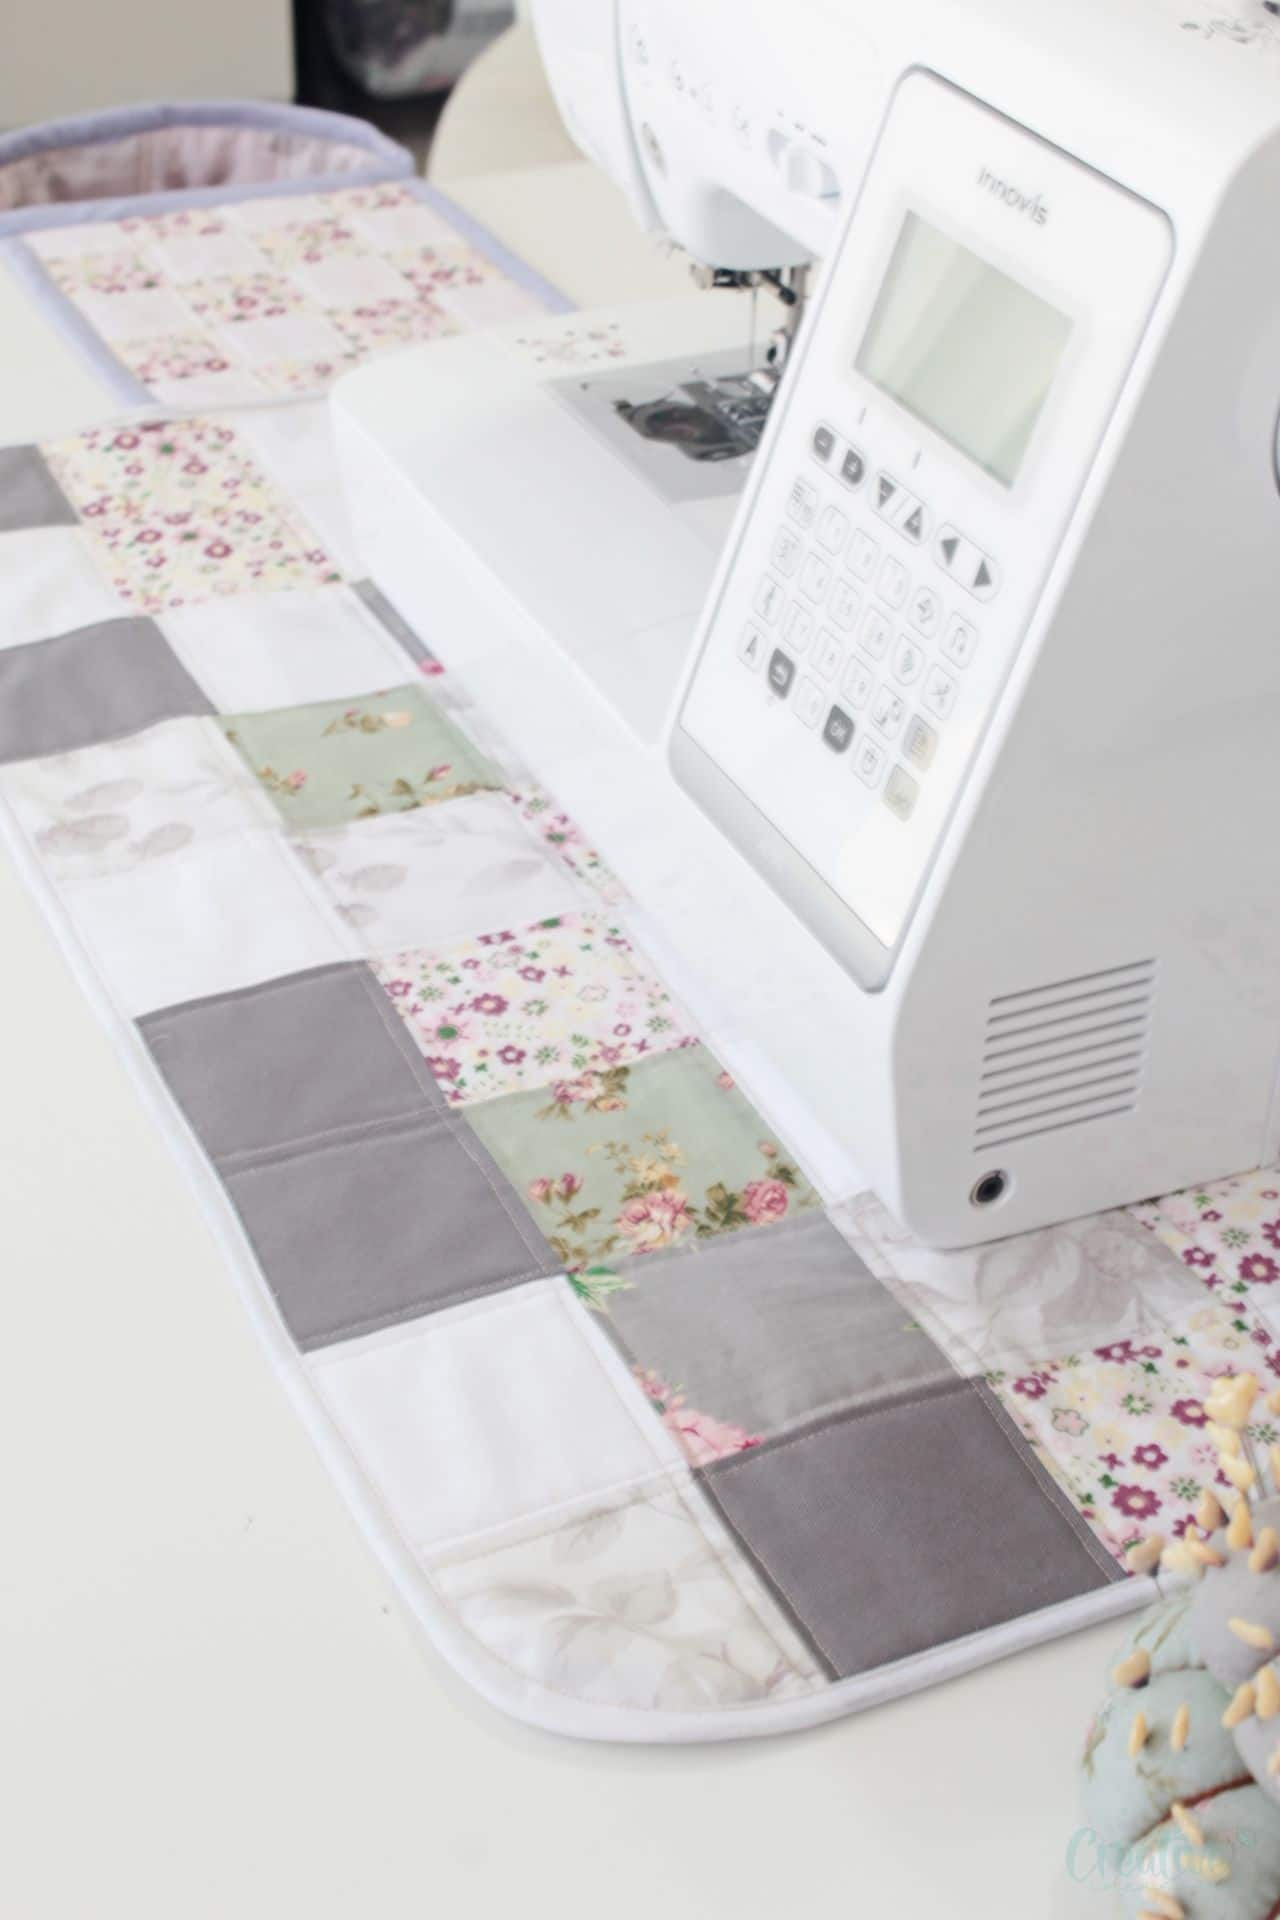 DIY sewing mat